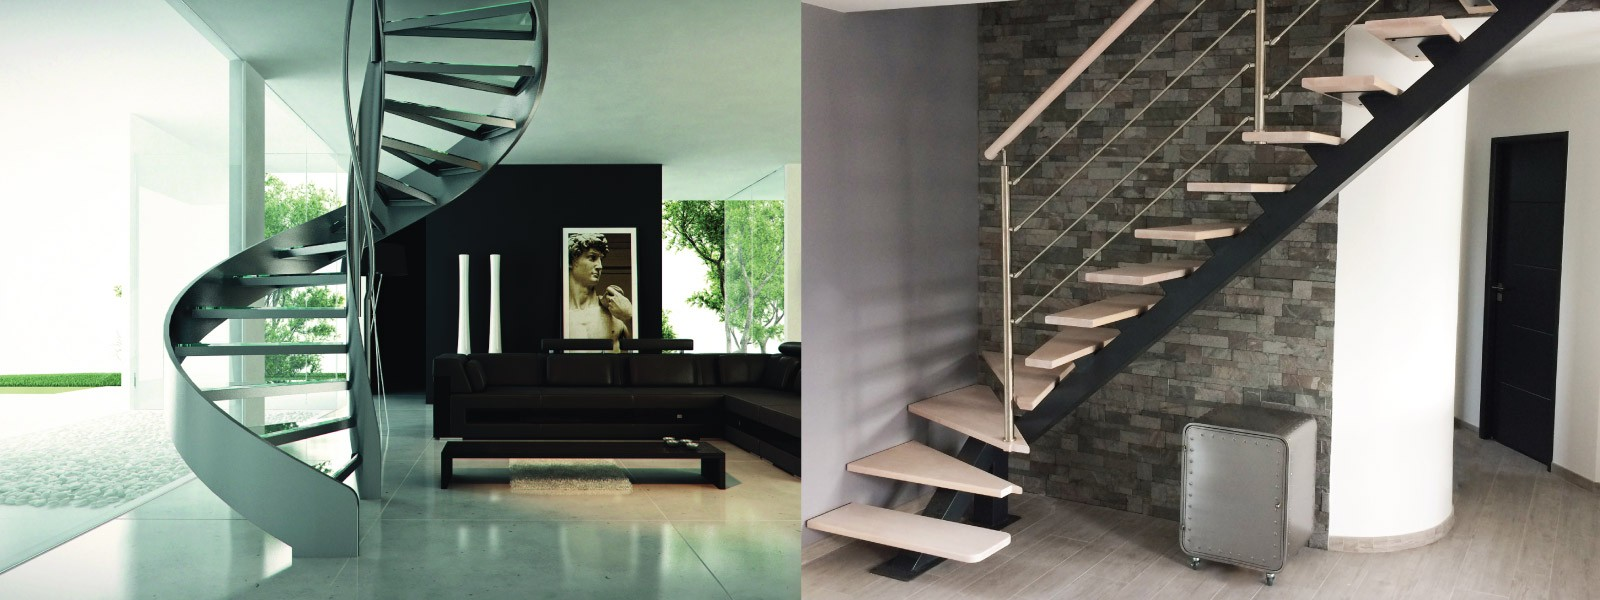 Metallic stairs and wooden stairs. Oeba is a manufacturer and installer of stairs in wood and steel.